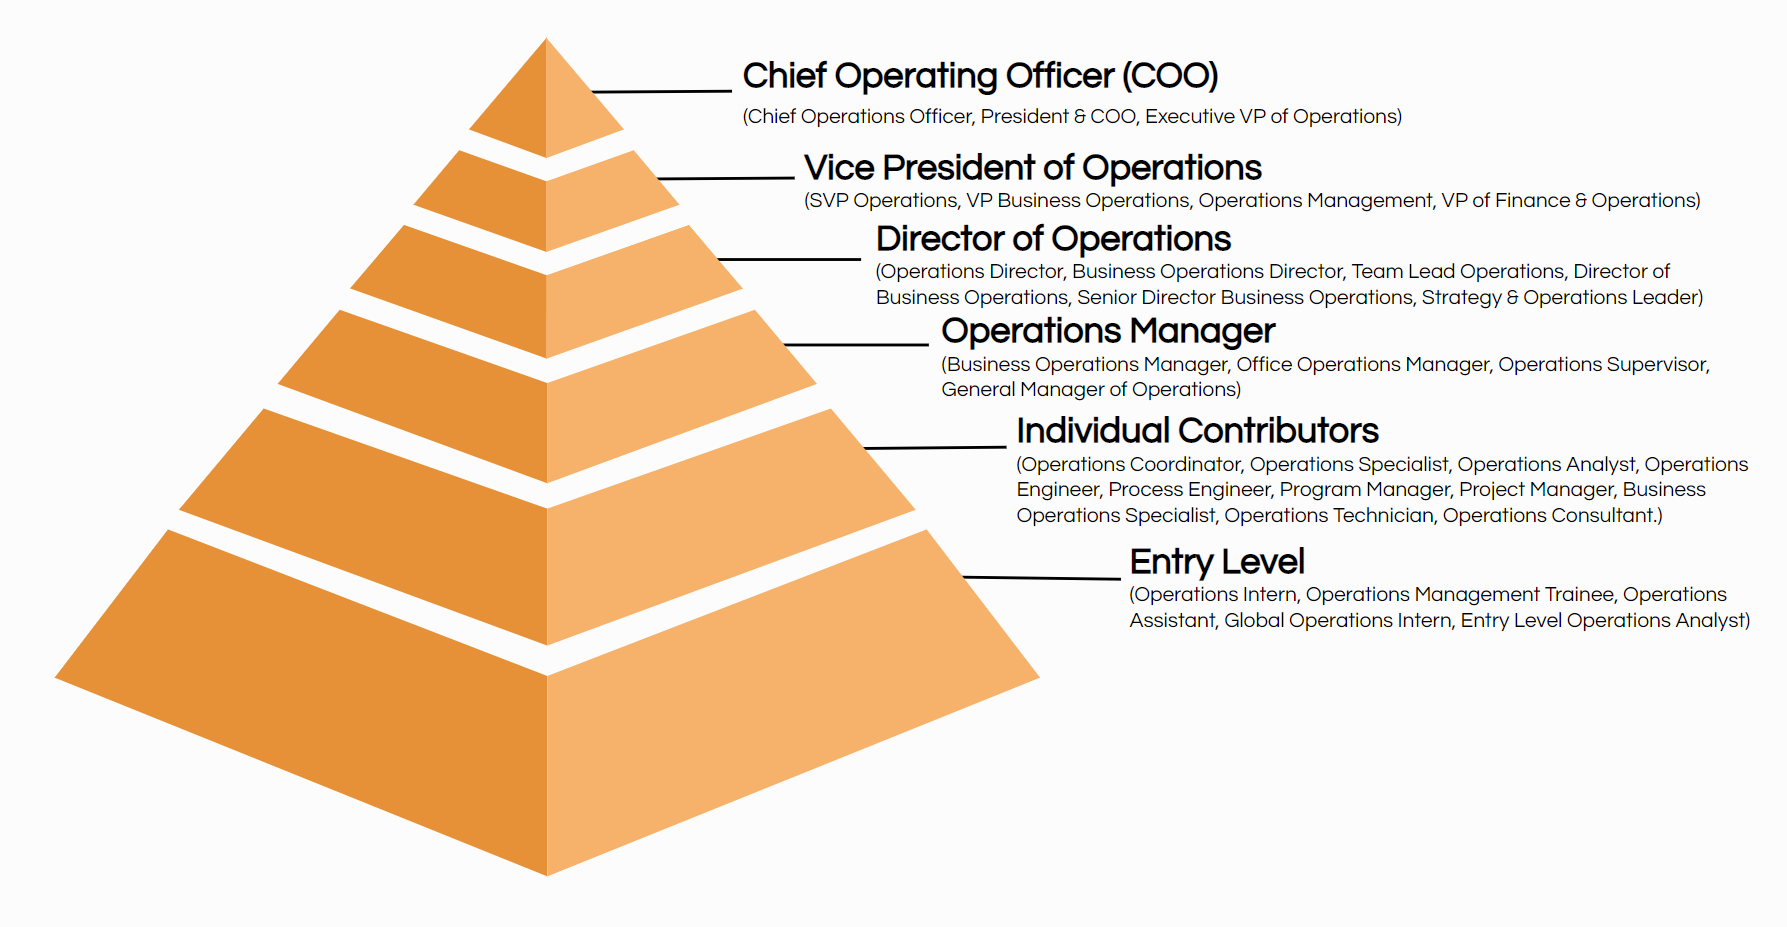 operations job titles hierarchy